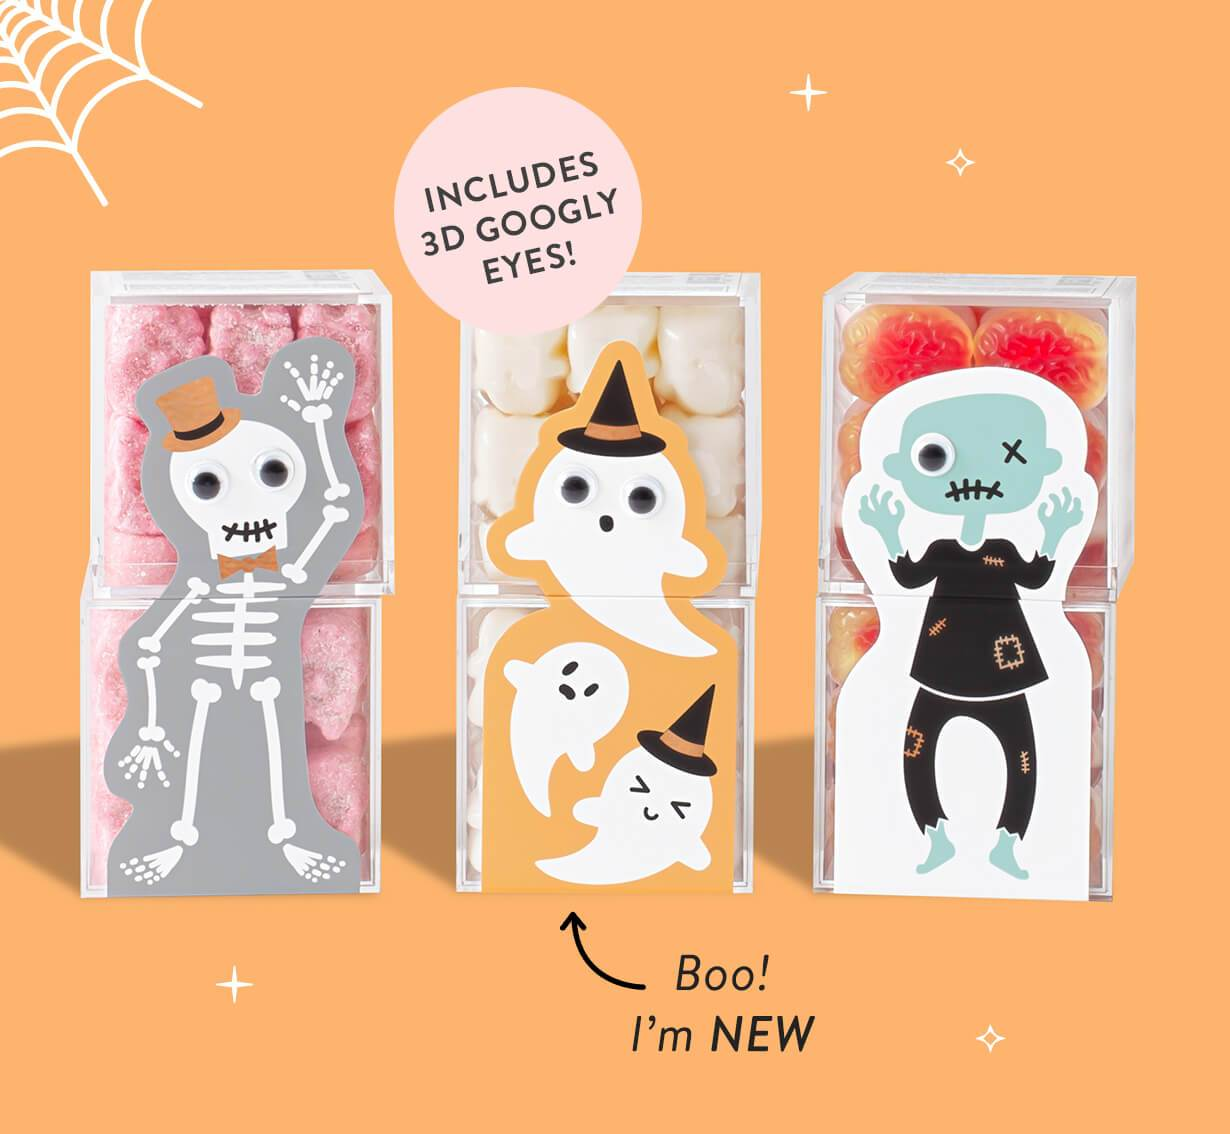 One Day Offer: Buy 3 Get the 4th Free Candy Cubes. Use code: SPOOKYTREAT at checkout. Picture of Sugarfina Halloween Collection including Gummy Ghosts, Zombie Brains, and Sugar Skulls